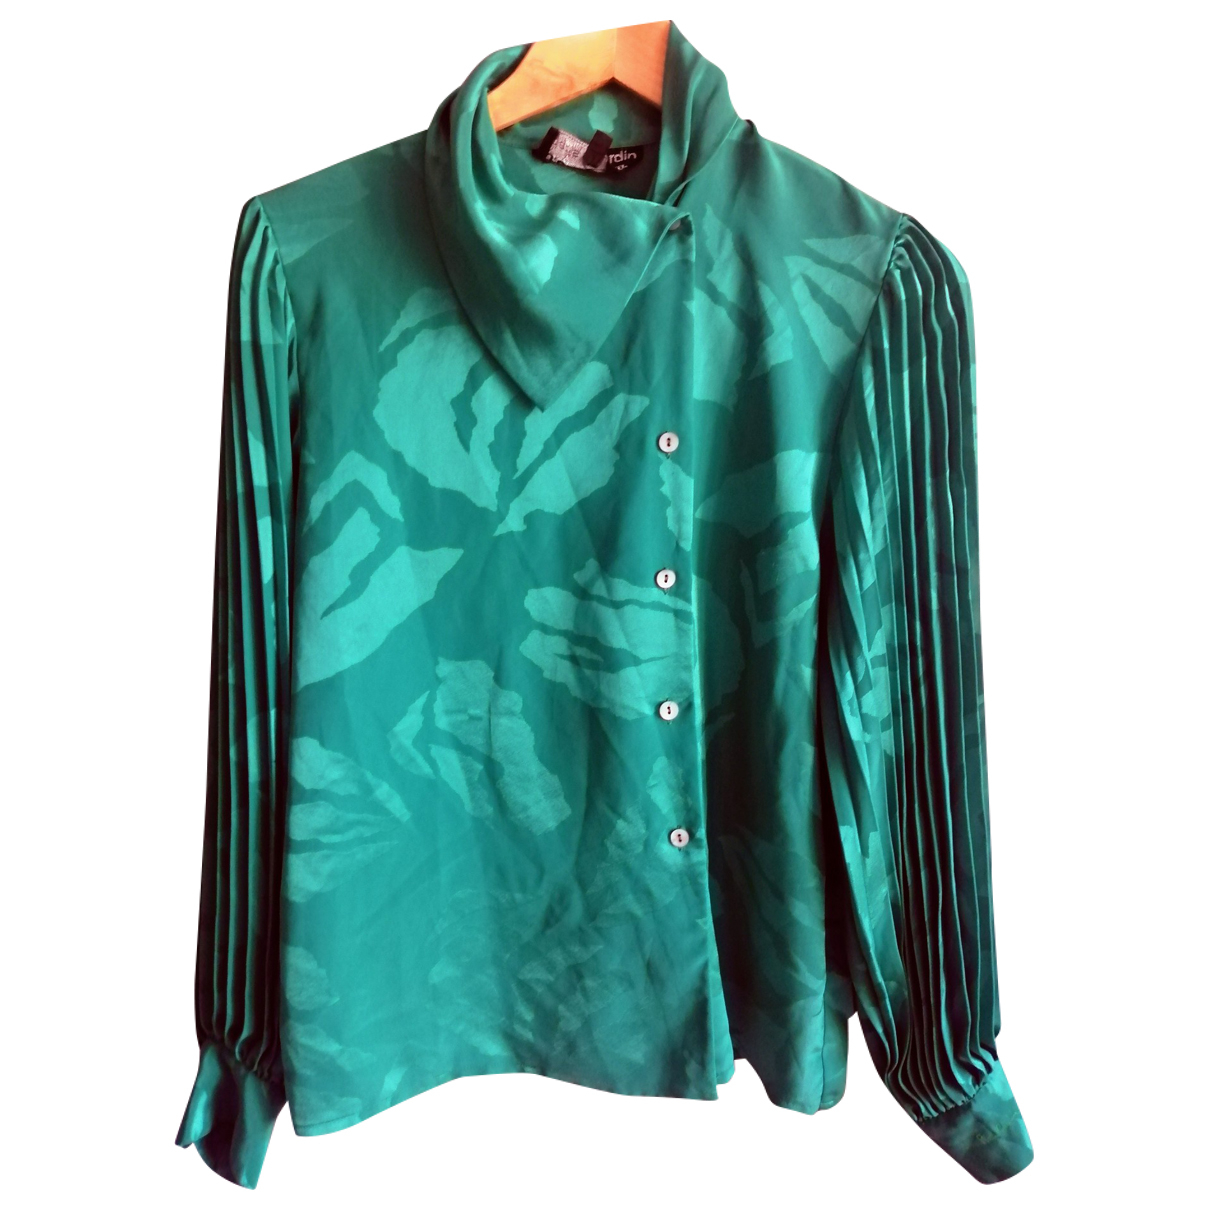 Pierre Cardin \N Green  top for Women 10 UK